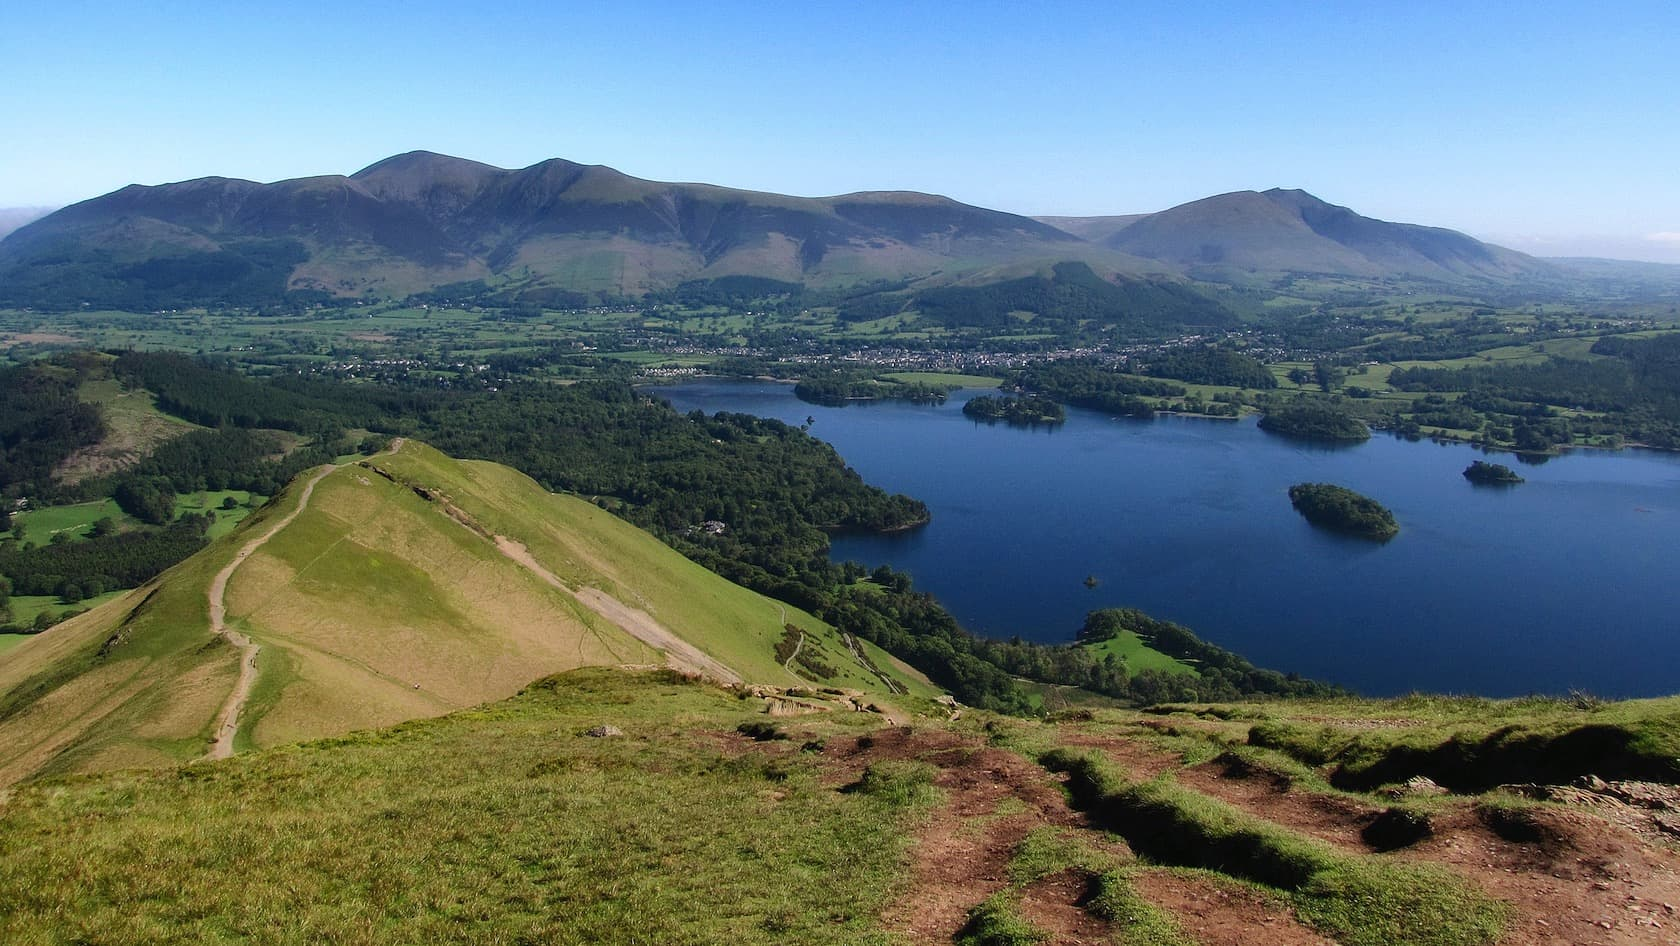 The view from Catbells looking north to the Skiddaw range. Photo by Mick Knapton, licensed CC-by-SA-3.0